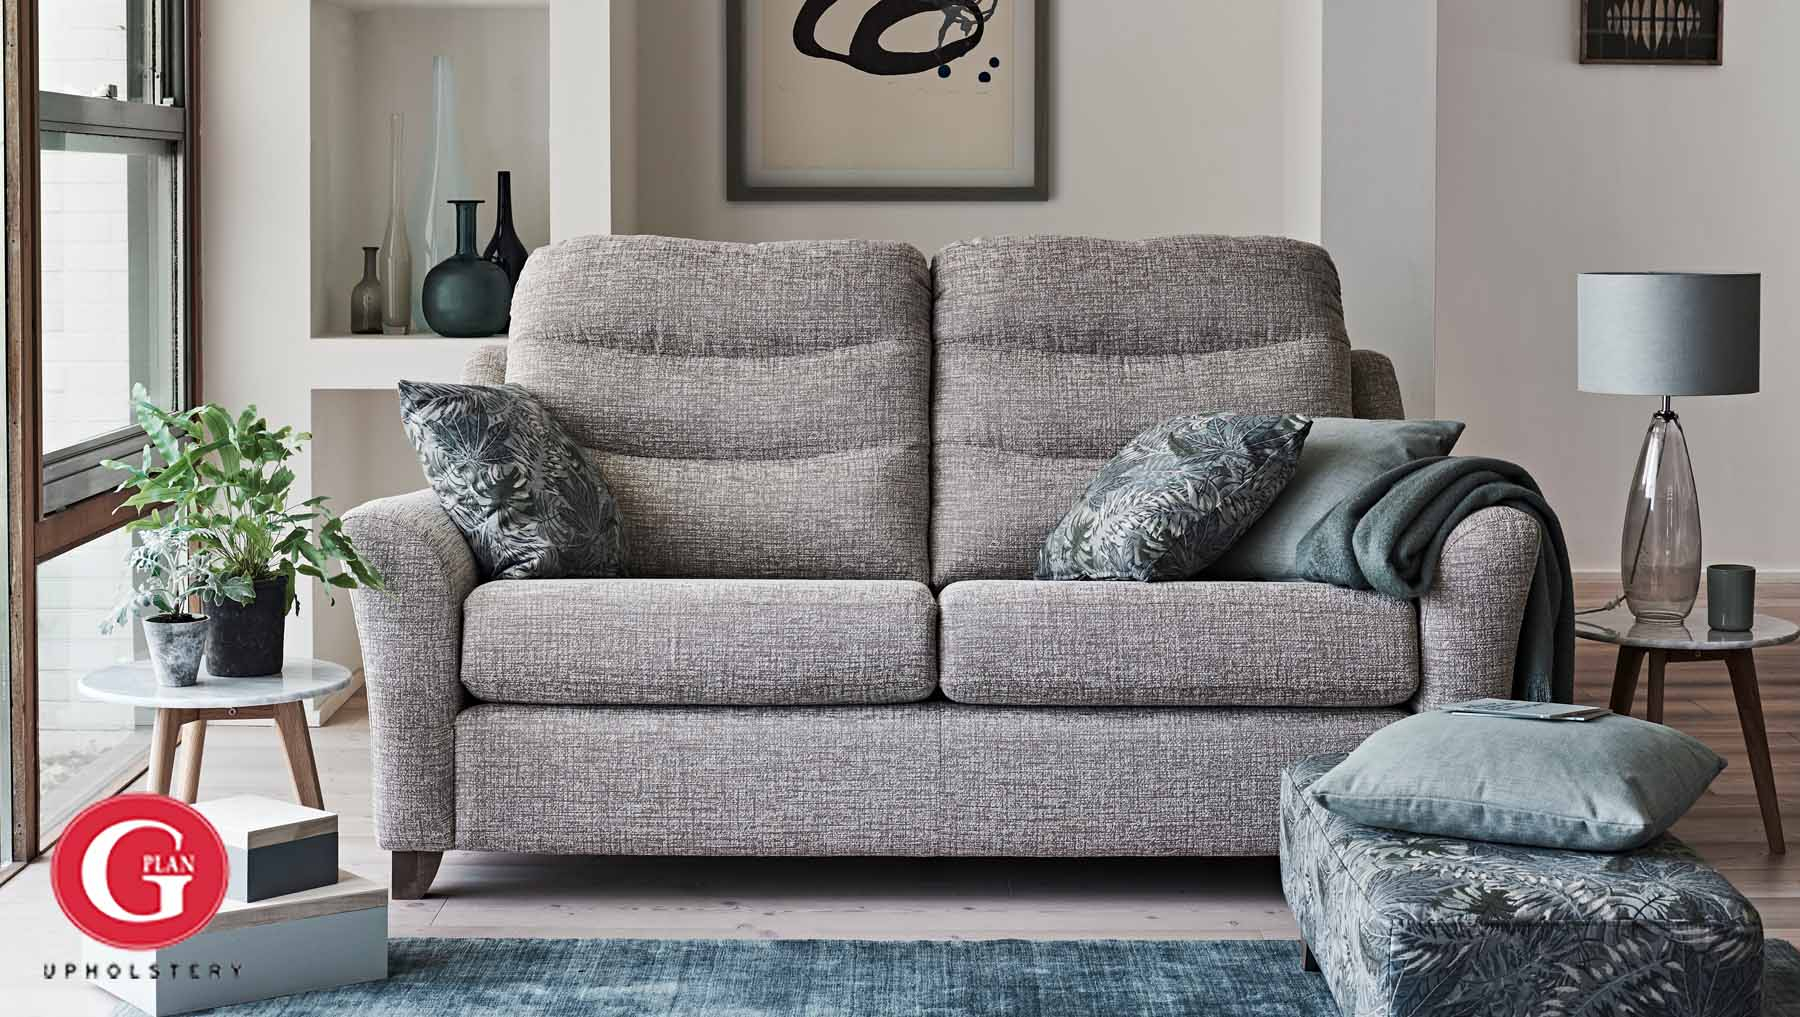 G Plan Tate – Fabric Ranges – Sofas & Chairs | Tr Hayes – Furniture Within Tate Ii Sofa Chairs (Image 4 of 25)